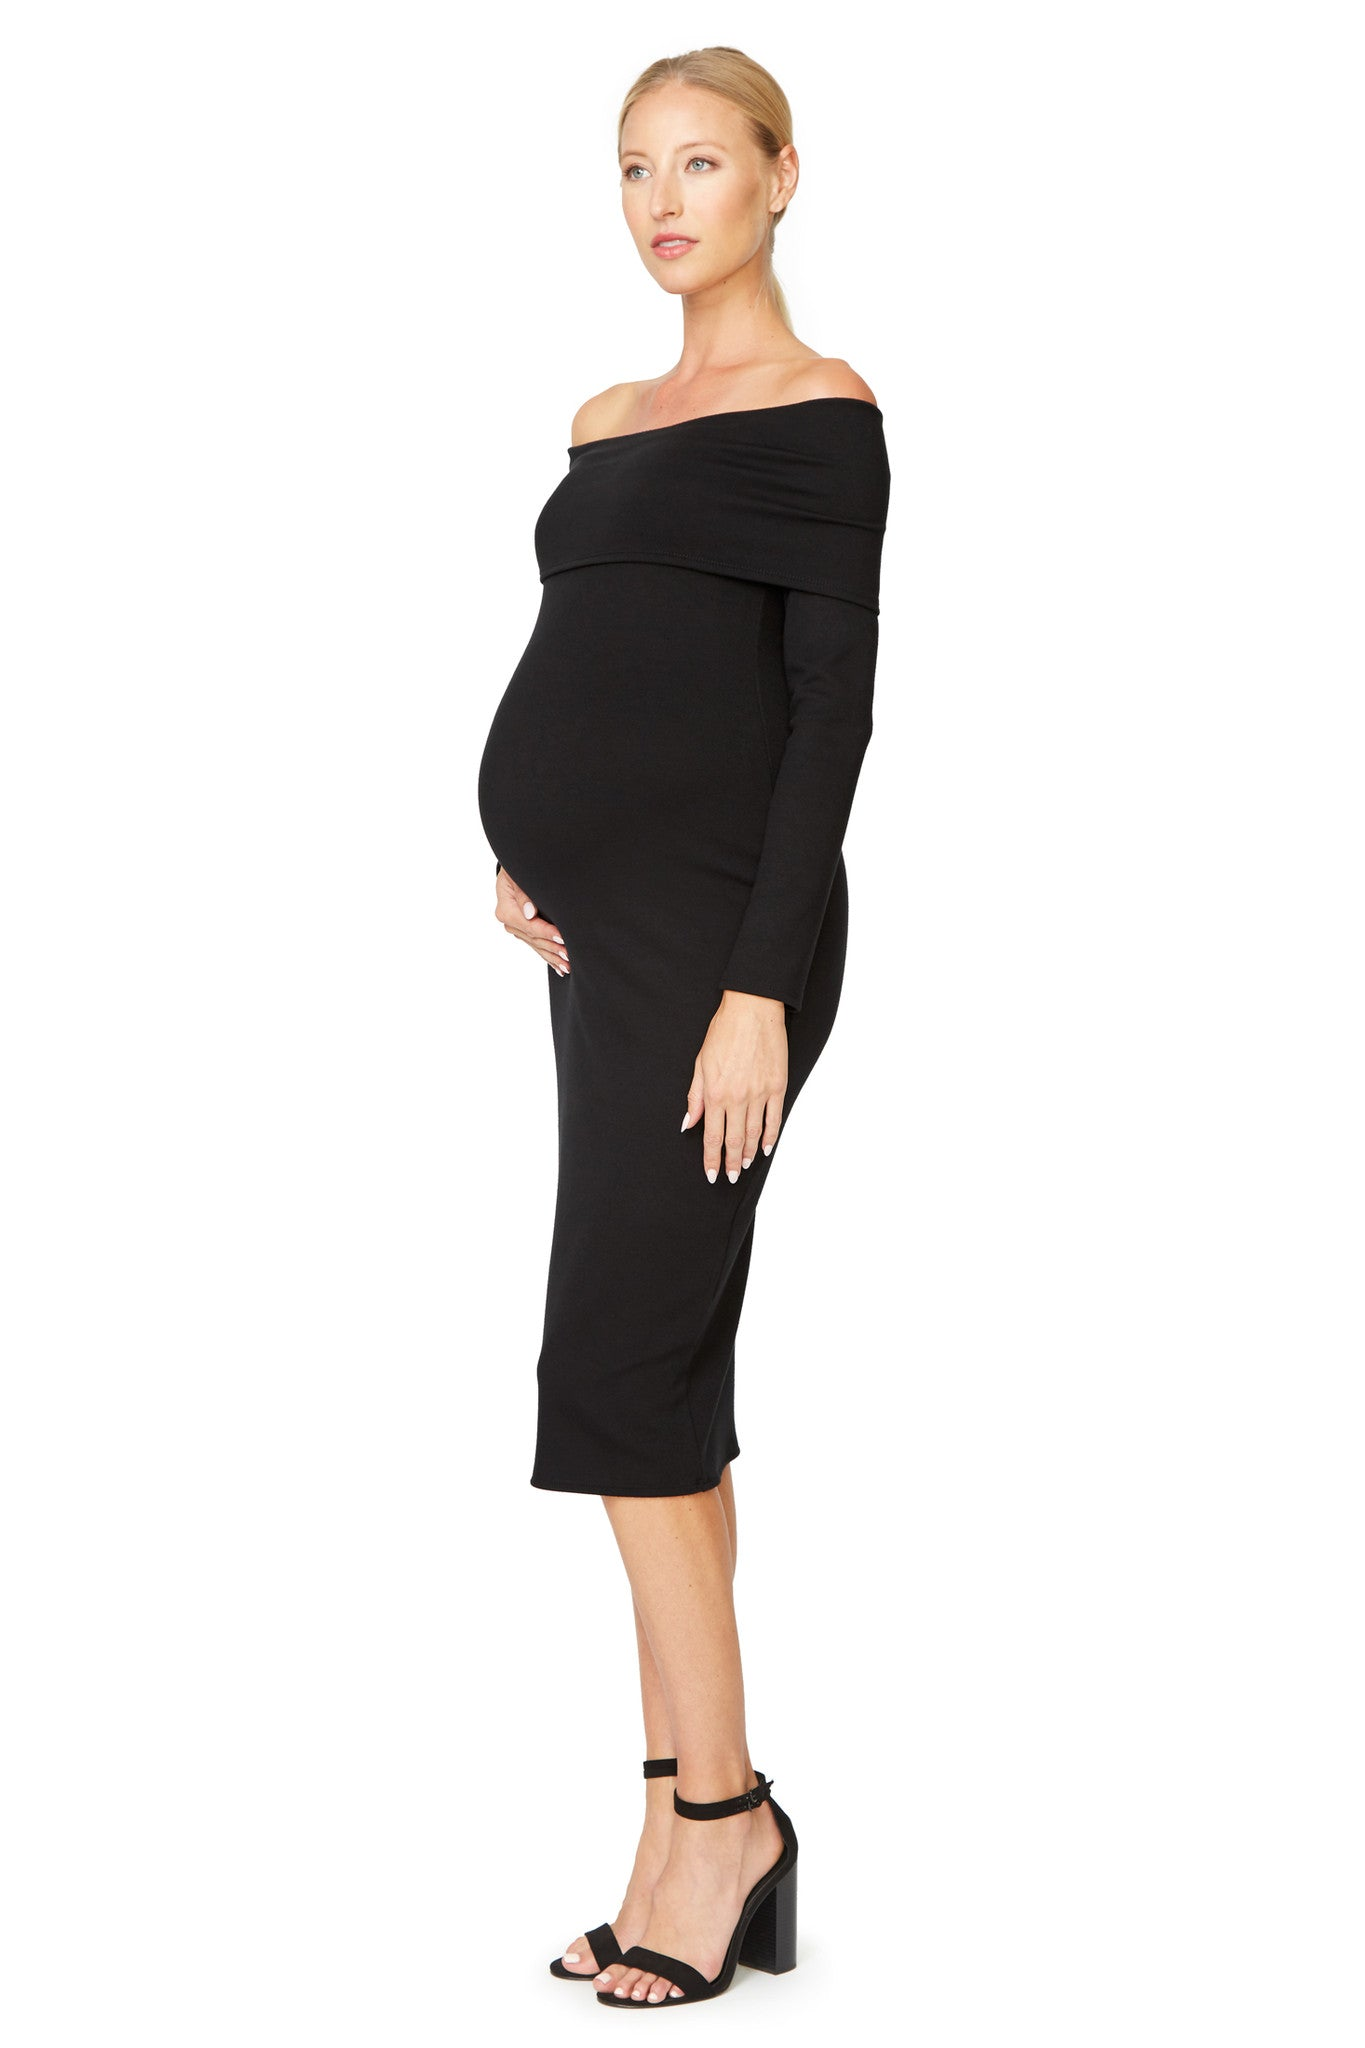 Luxe Rib Welsy Dress - Black